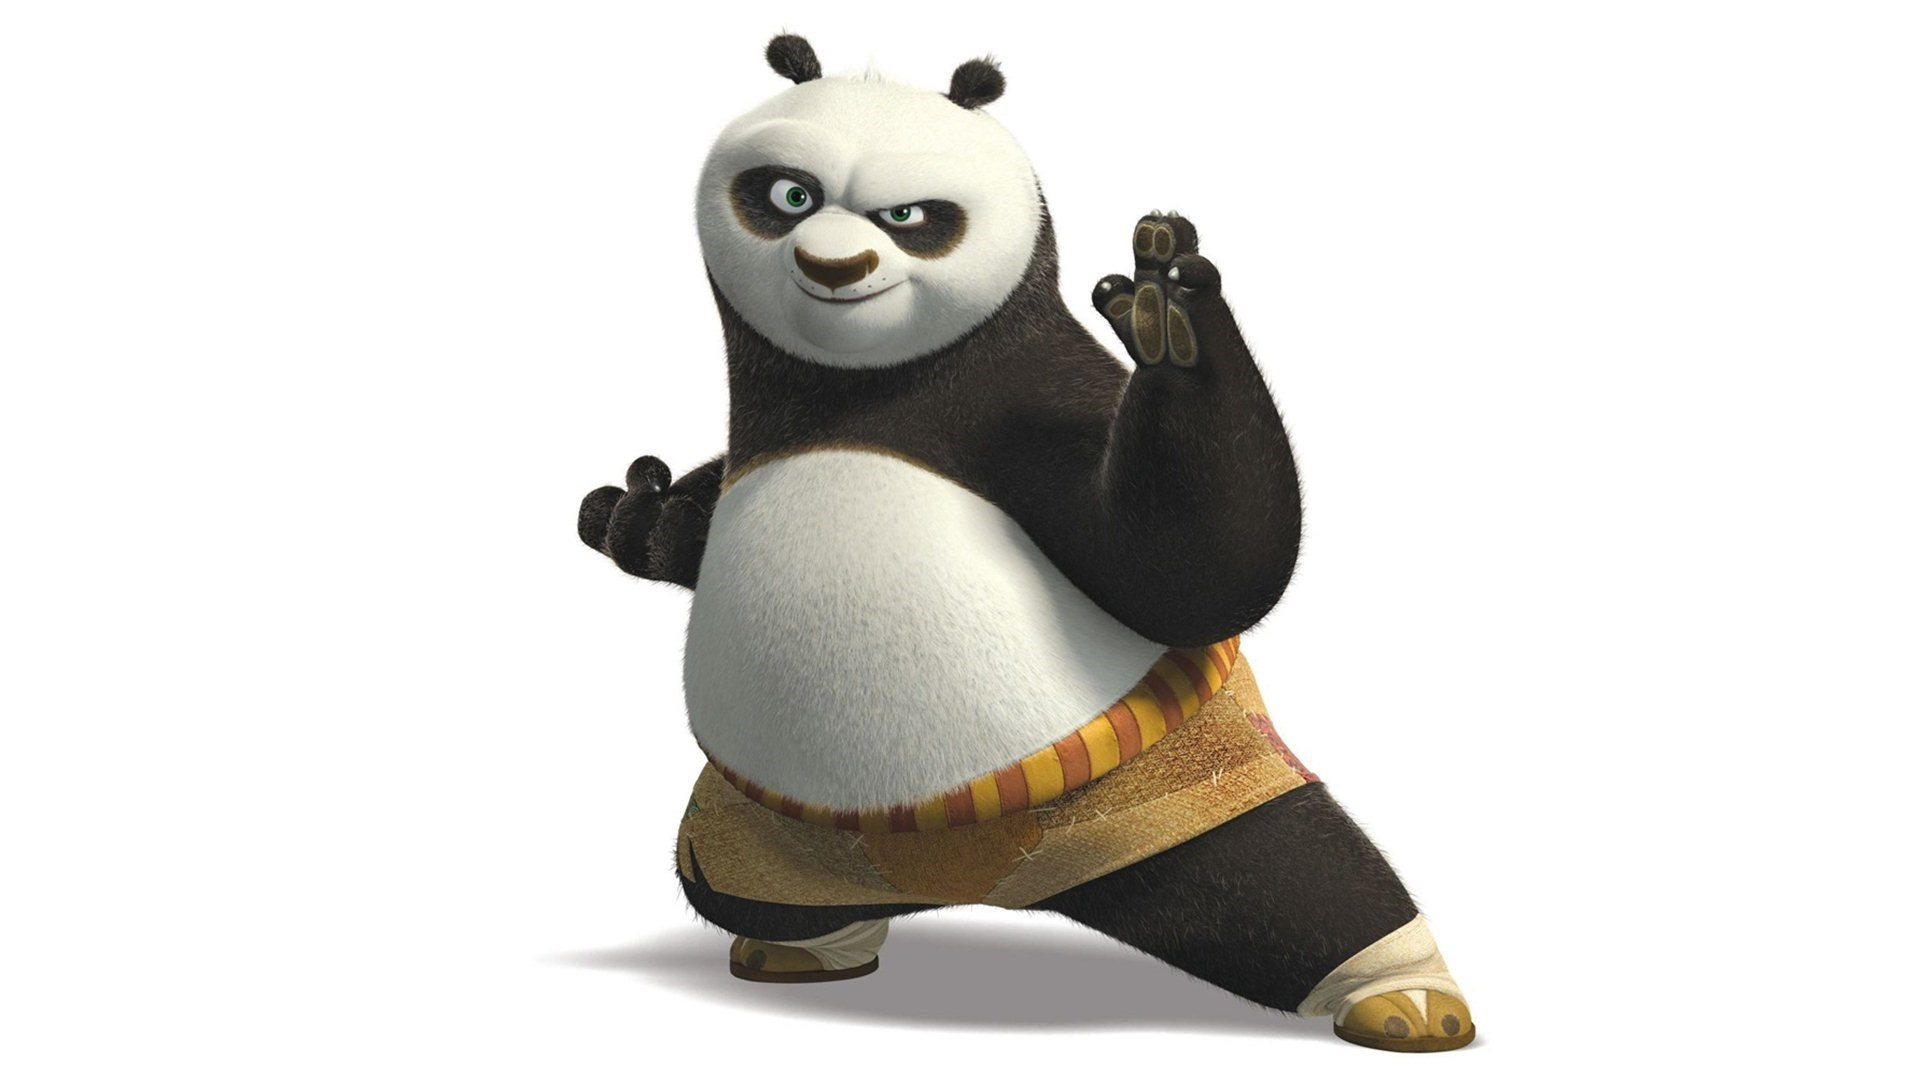 kung fu panda 3 movie hd wallpapers desktop background